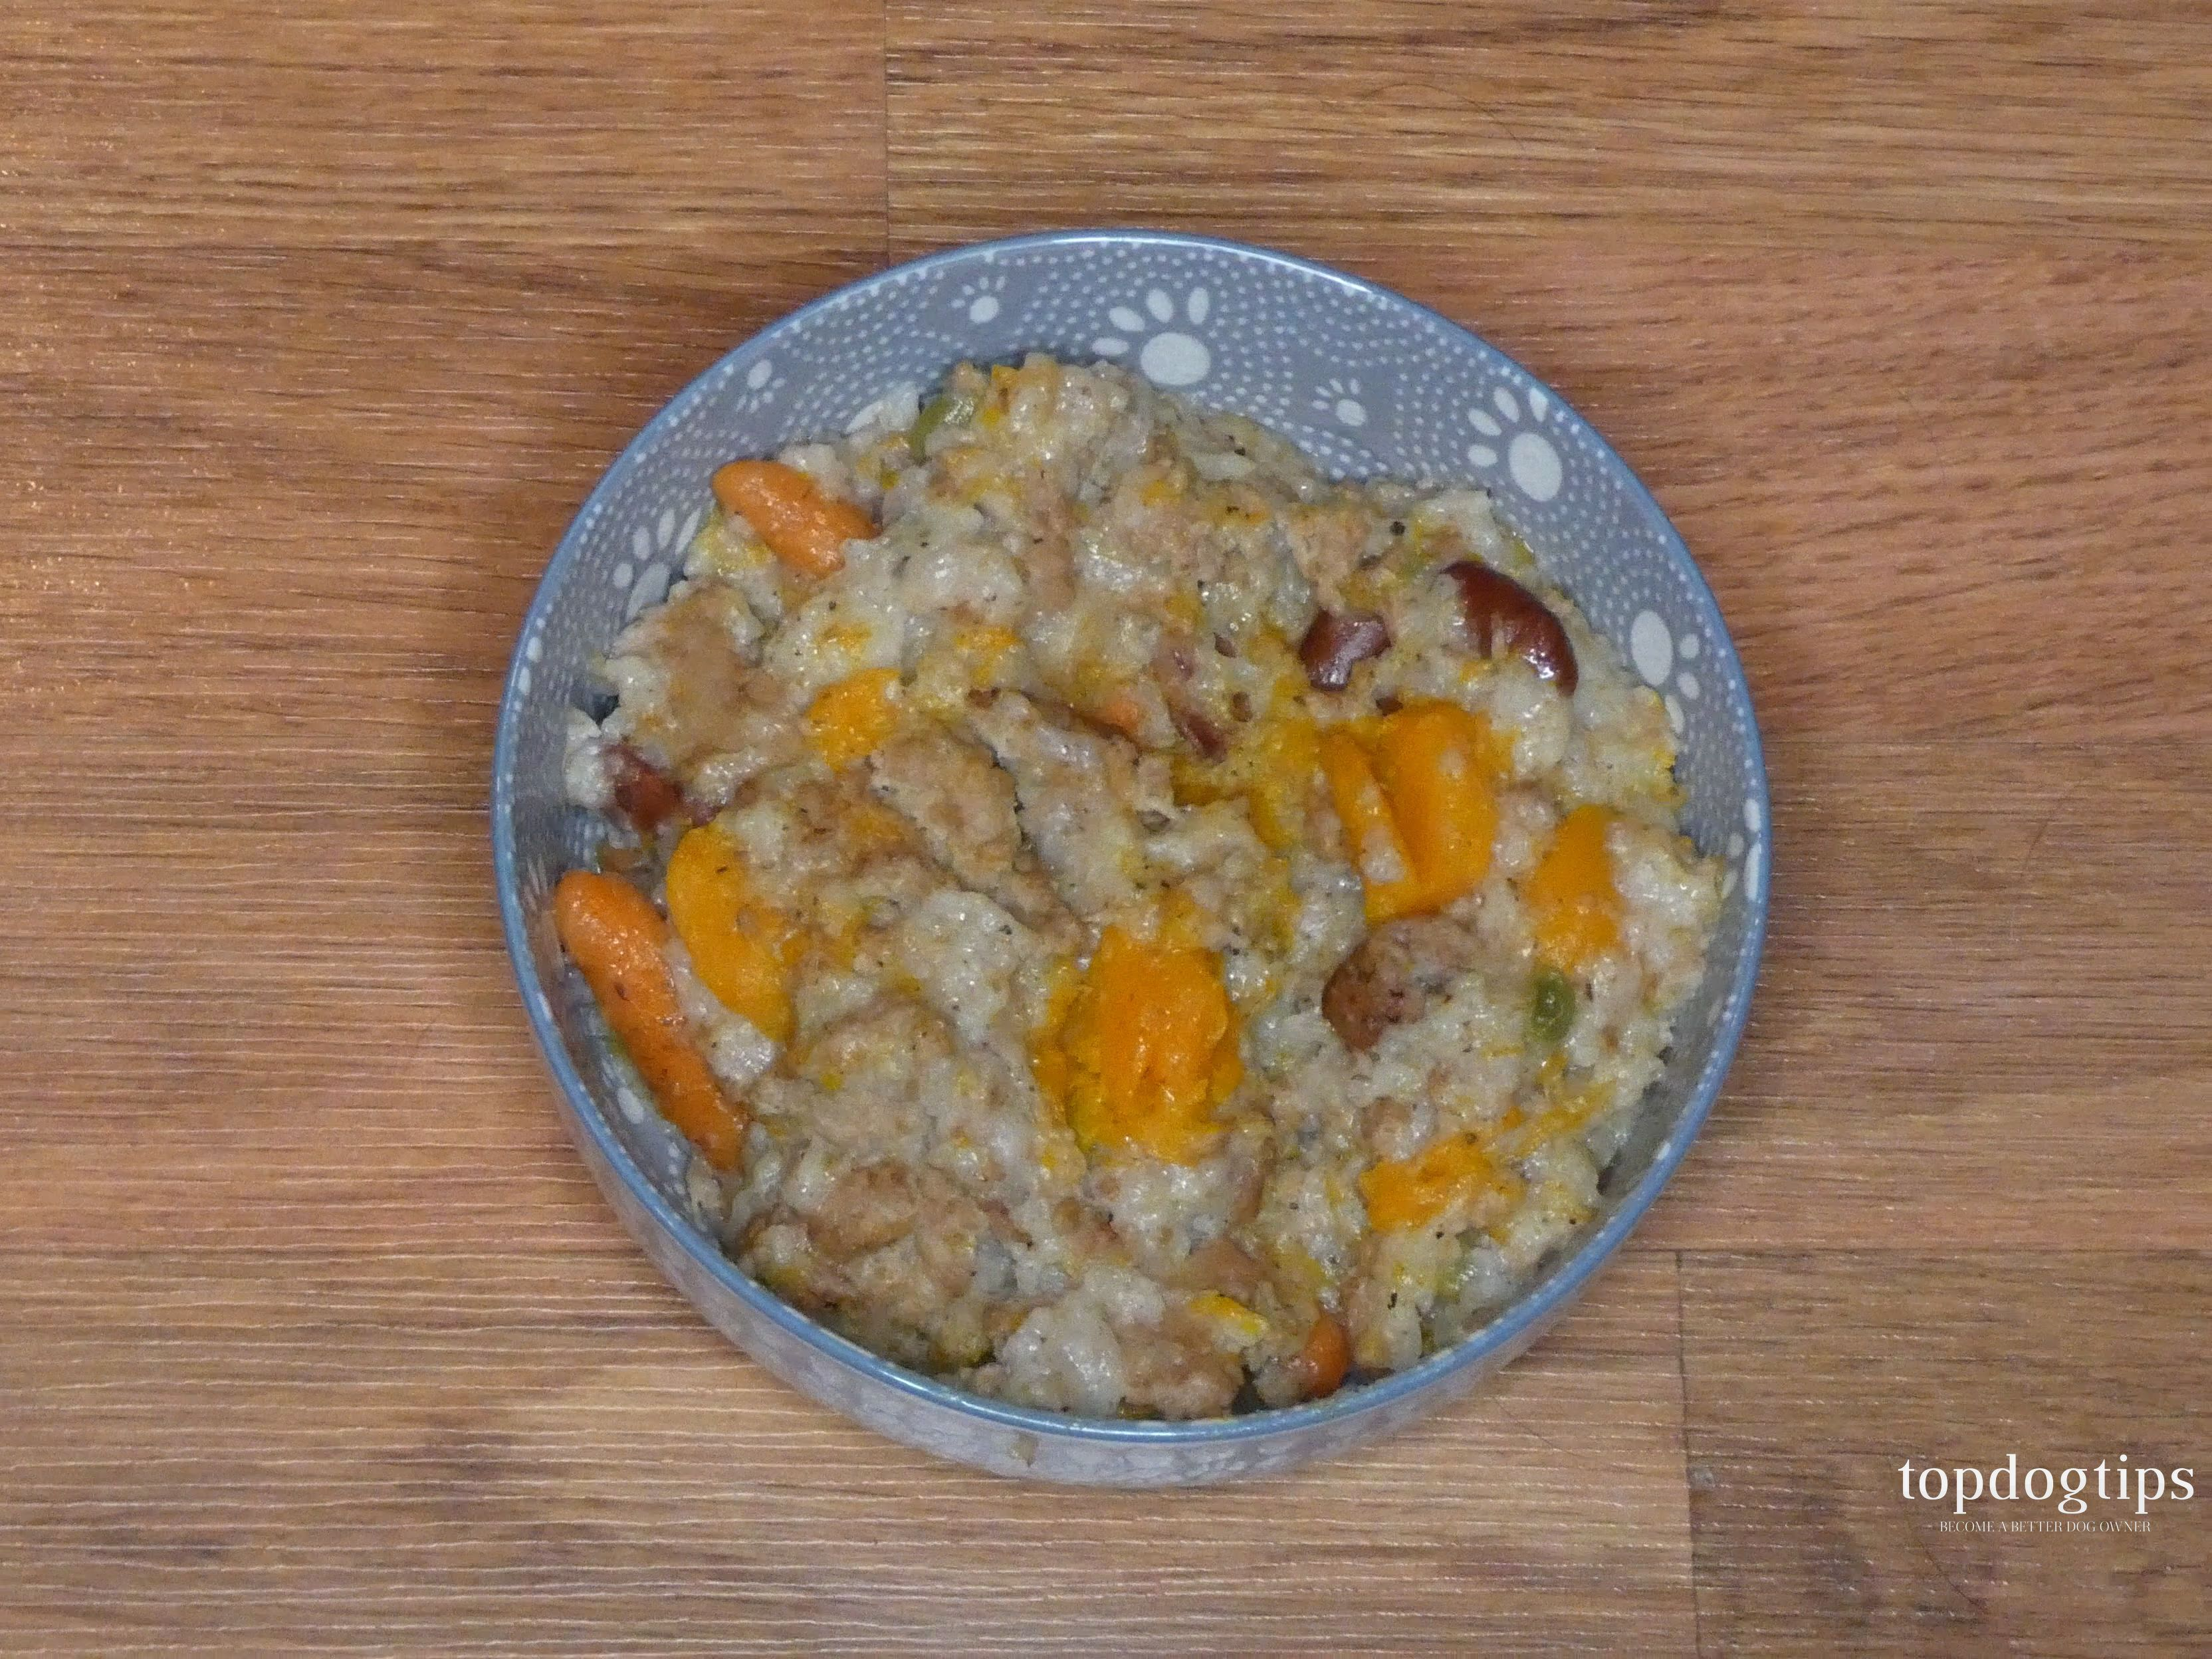 Homemade Dog Food This Homemade Dog Food For Allergic Dogs Is Made